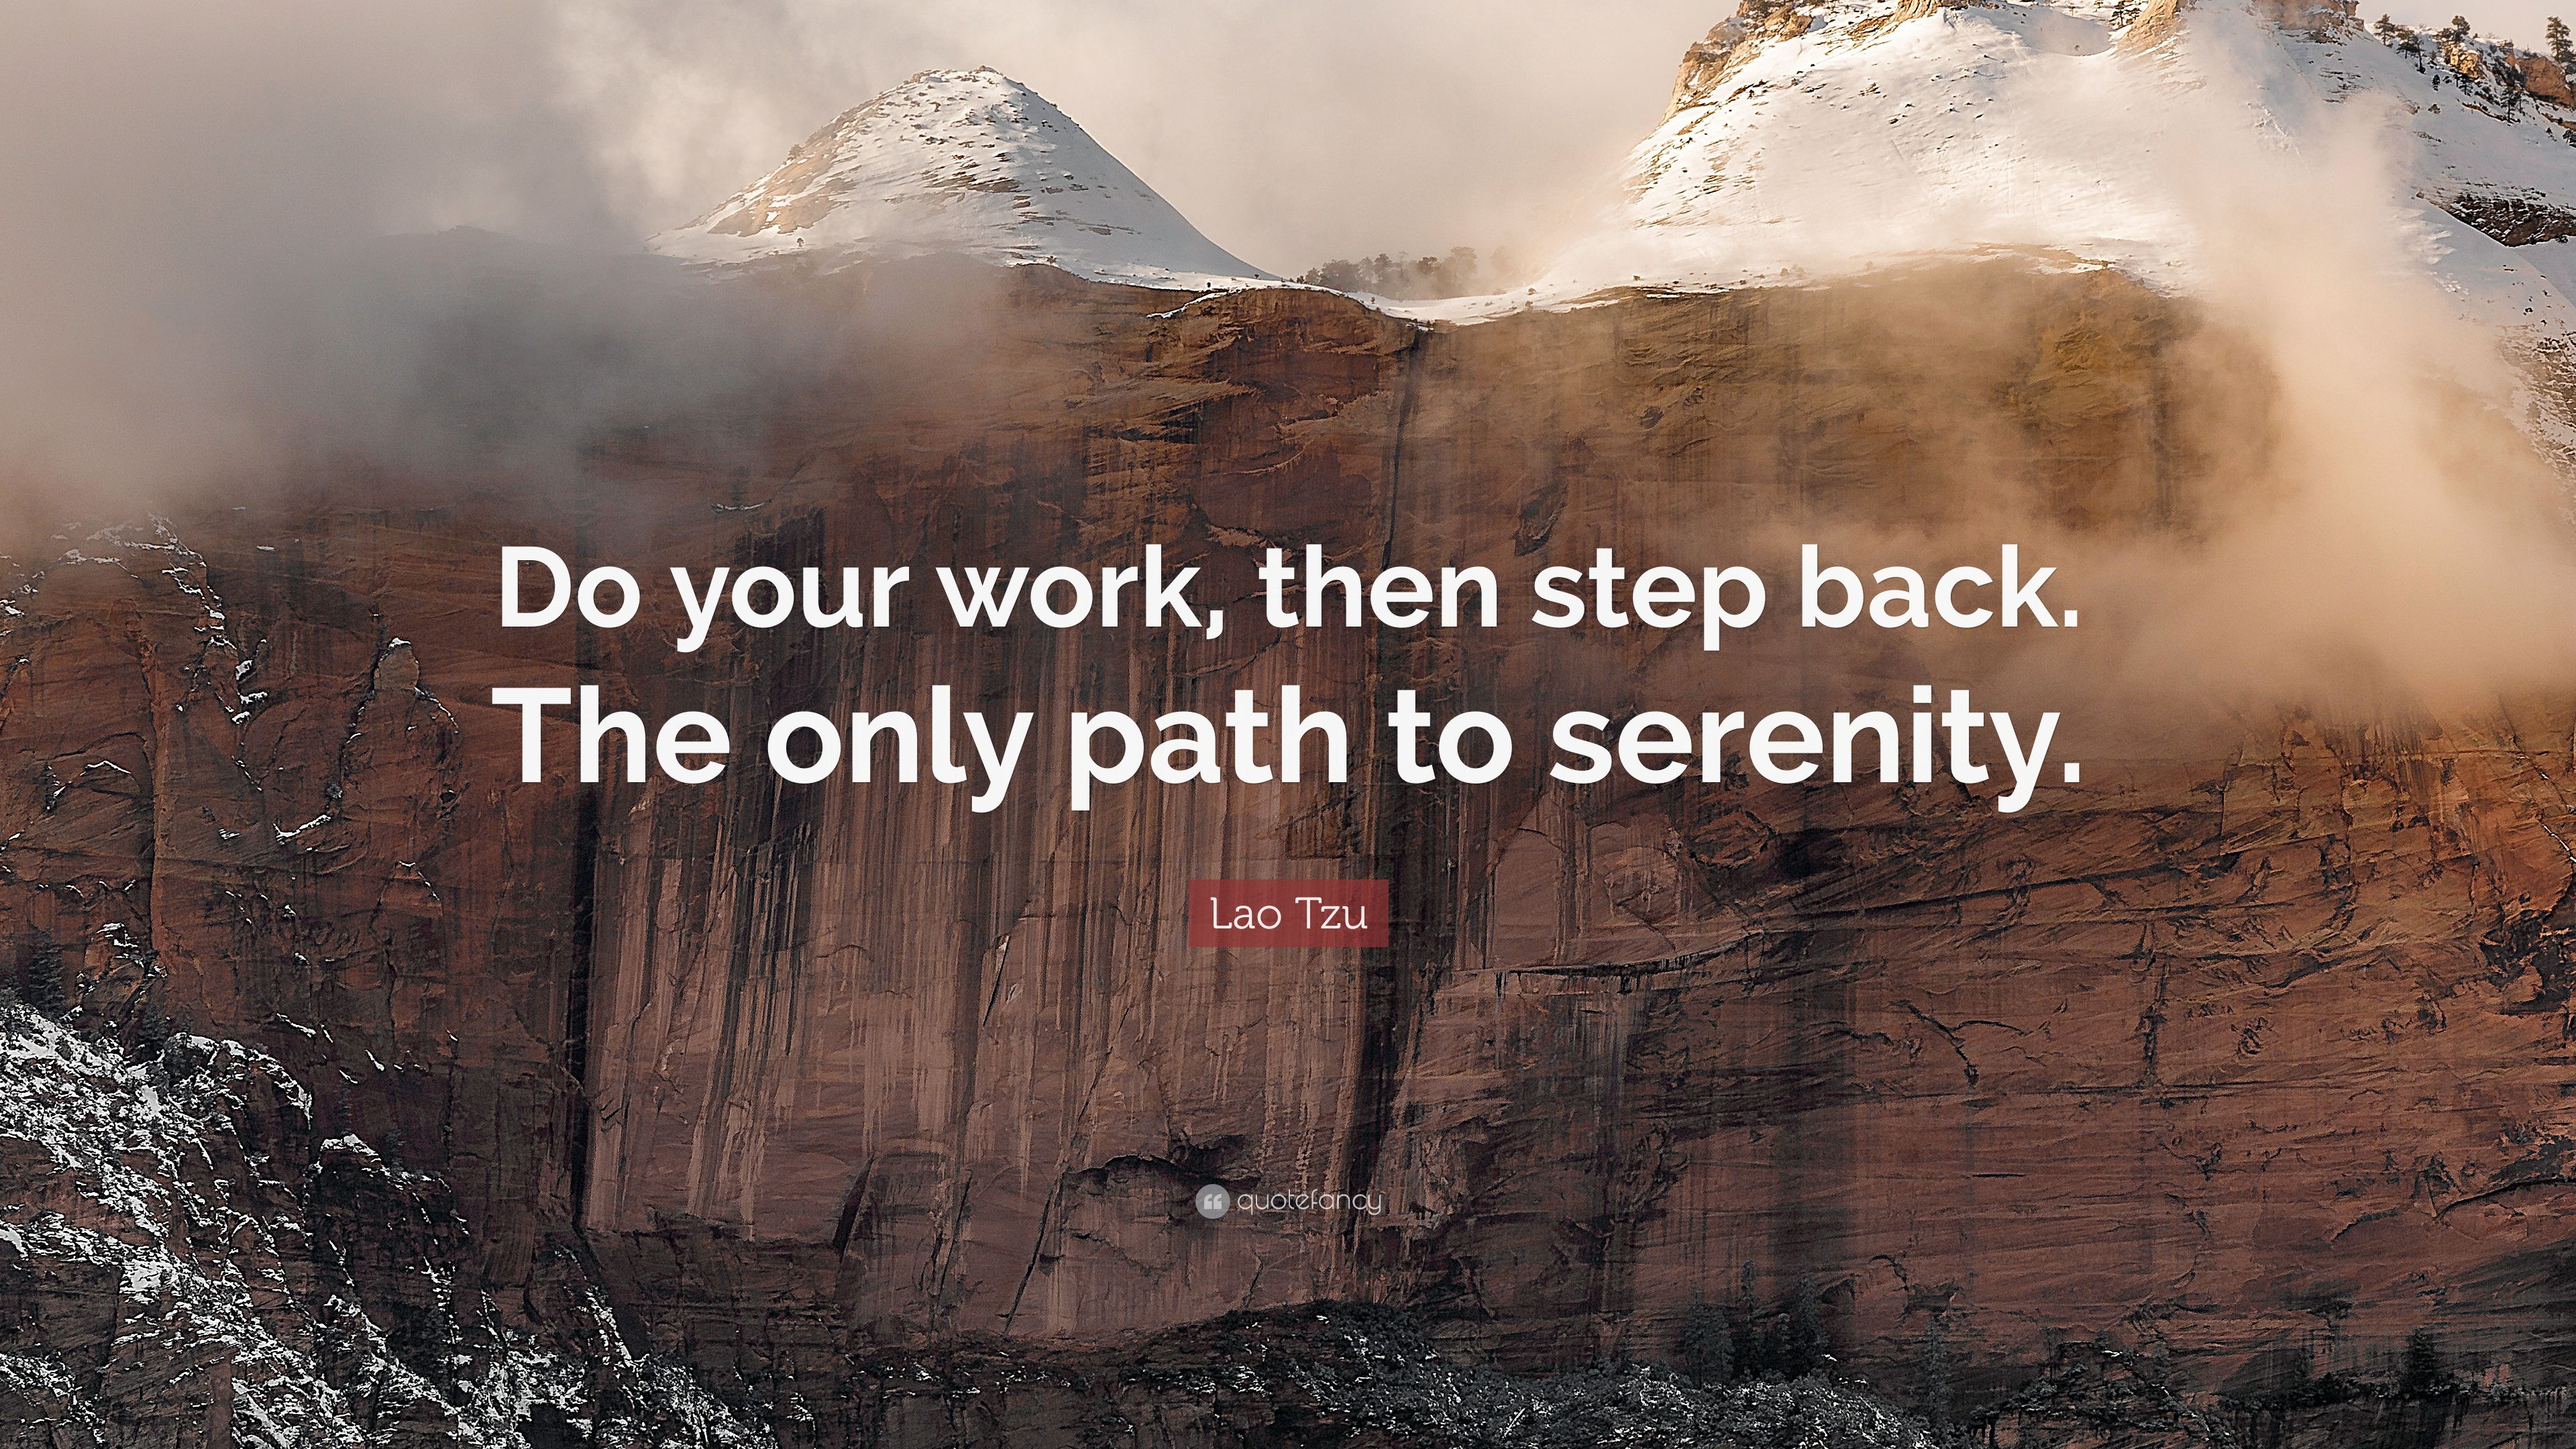 lao tzu quote   u201cdo your work  then step back  the only